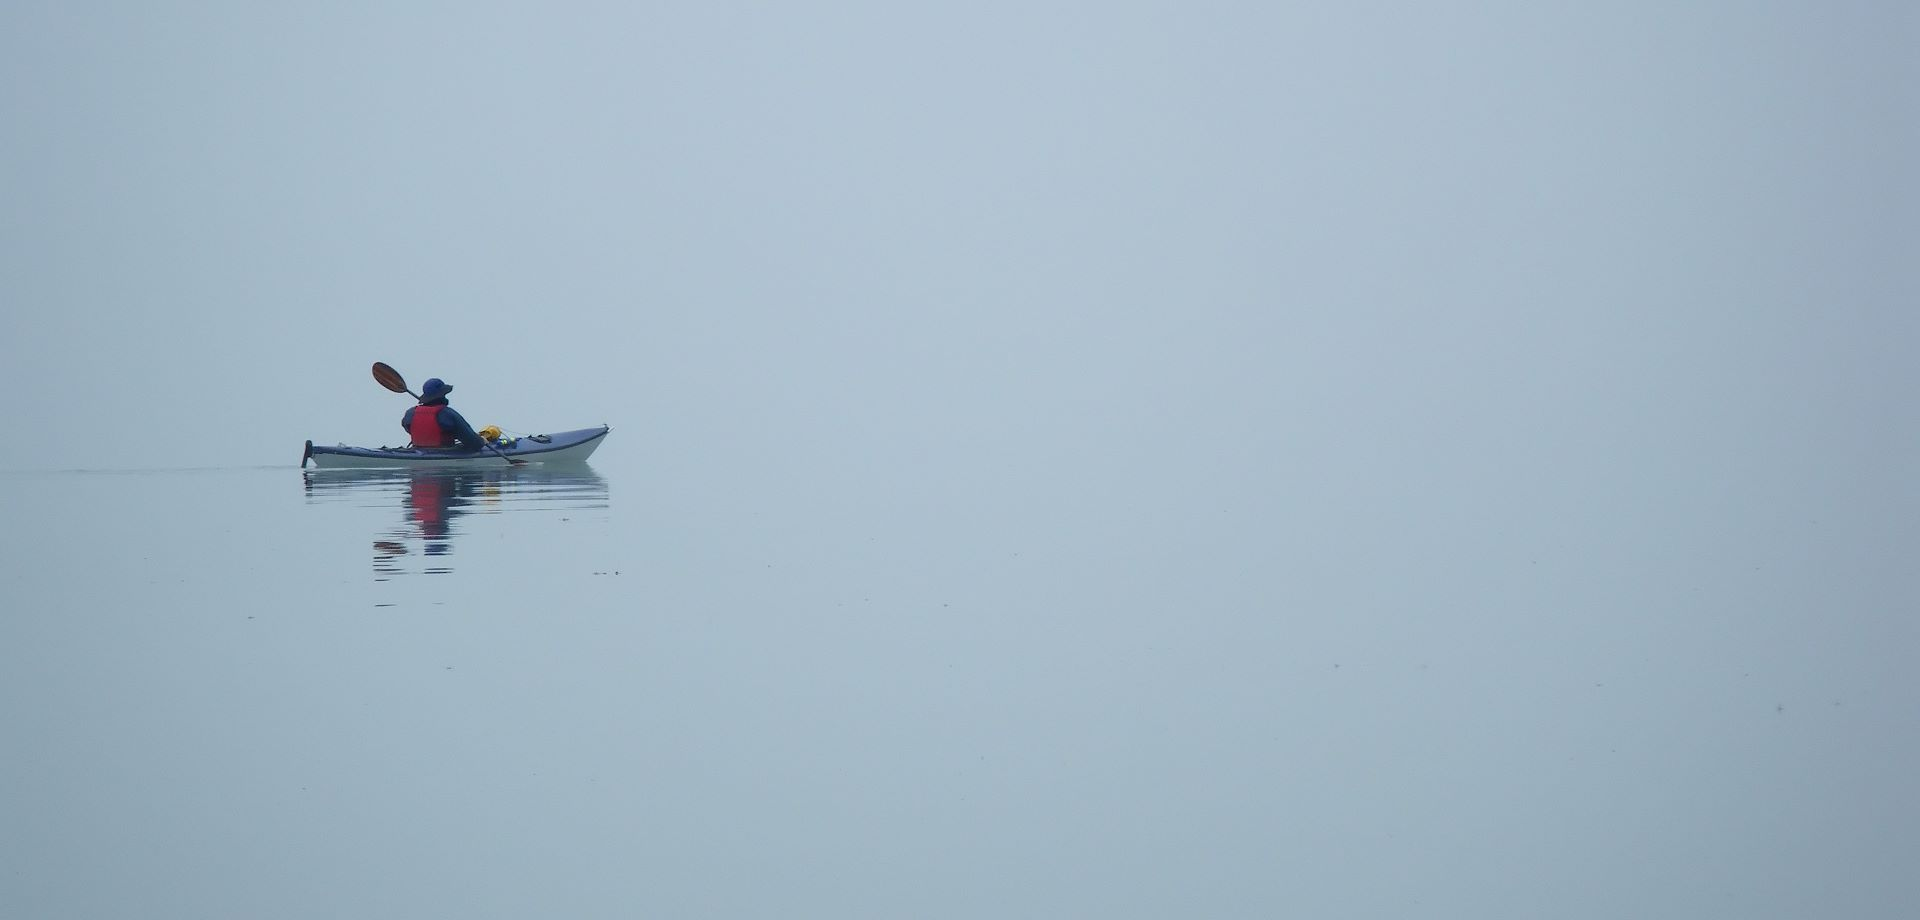 Kayaking in fog - it is eerily quiet, and peaceful.